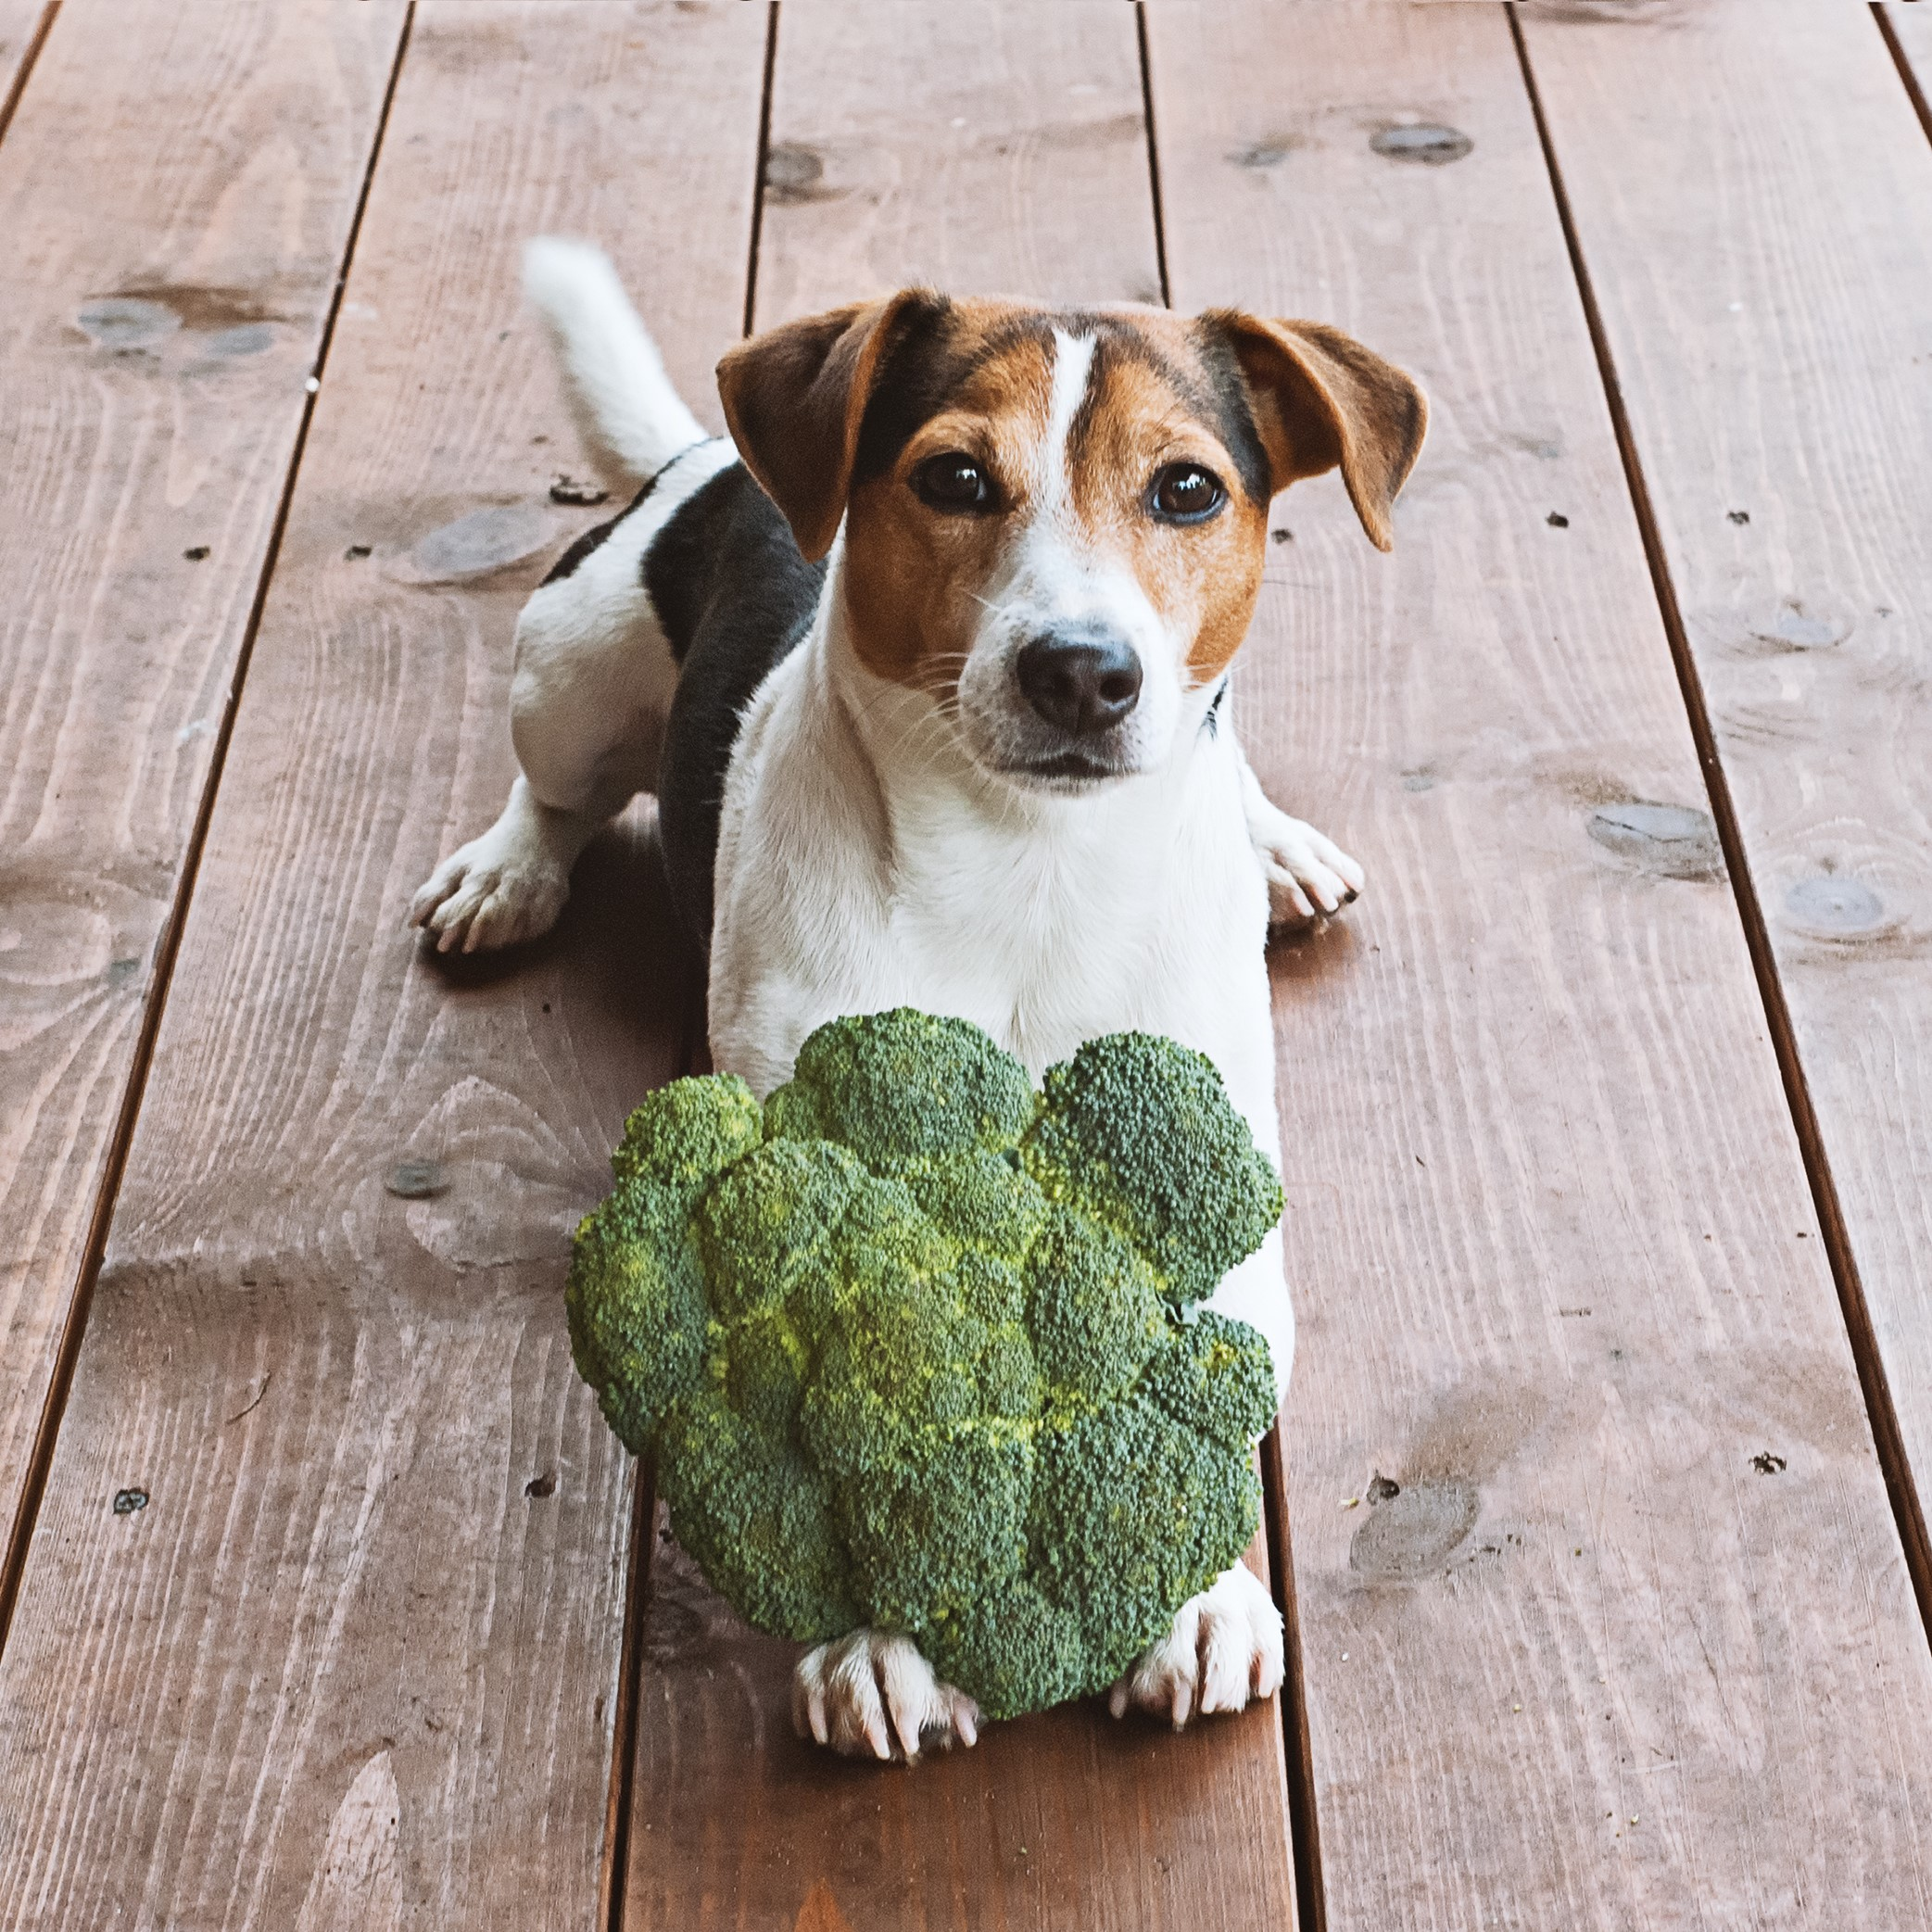 Adorable Young Jack Russell Dog Lying with Fresh Green Broccoli